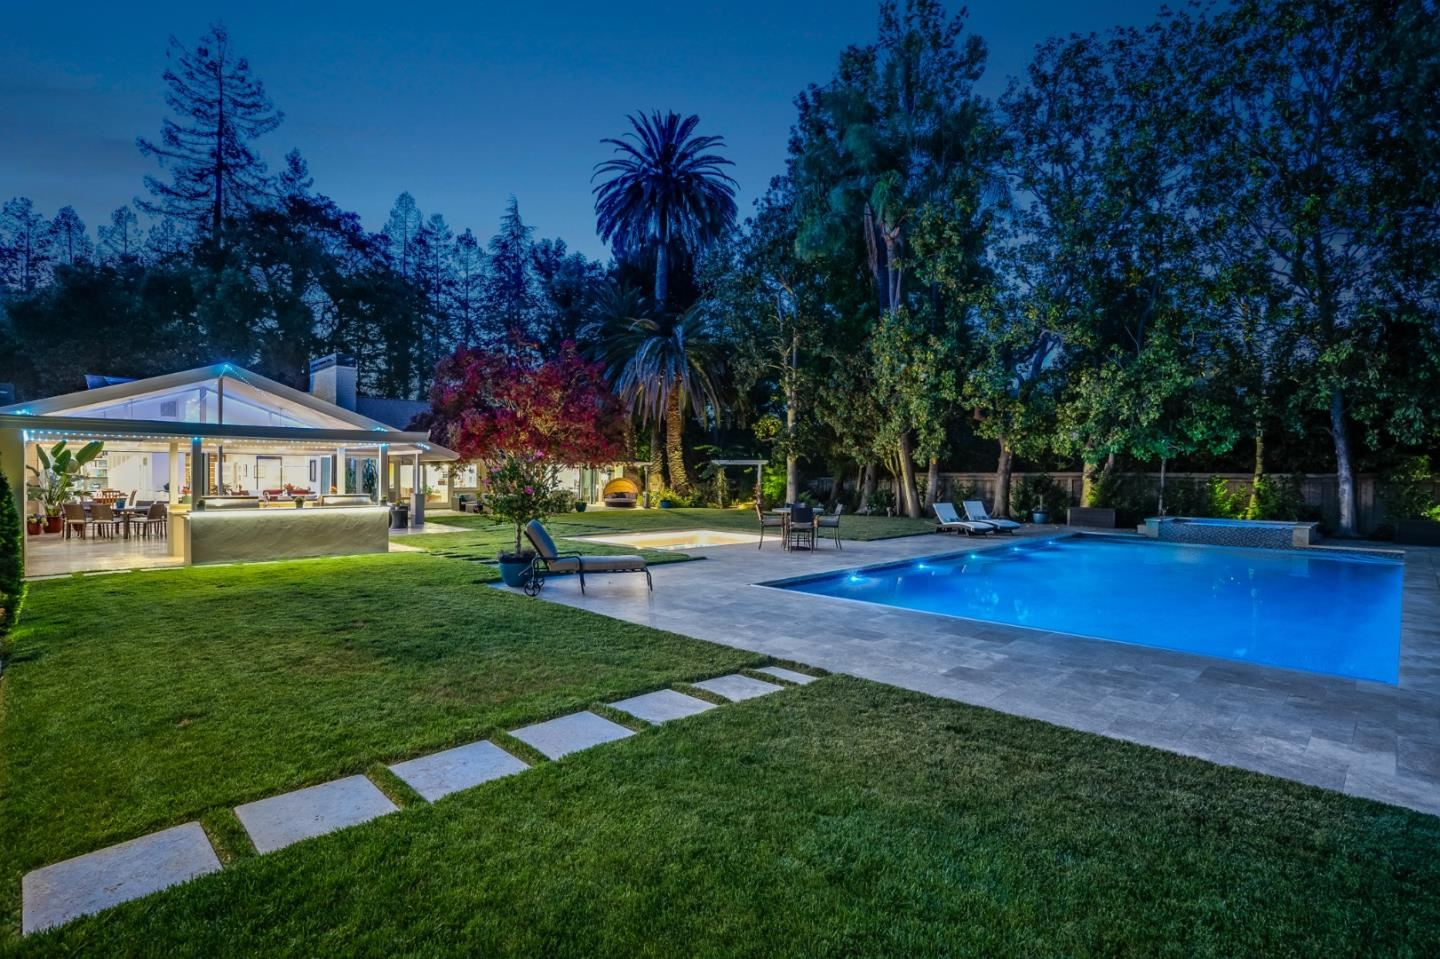 Photo for 89 Selby LN, ATHERTON, CA 94027 (MLS # ML81808616)